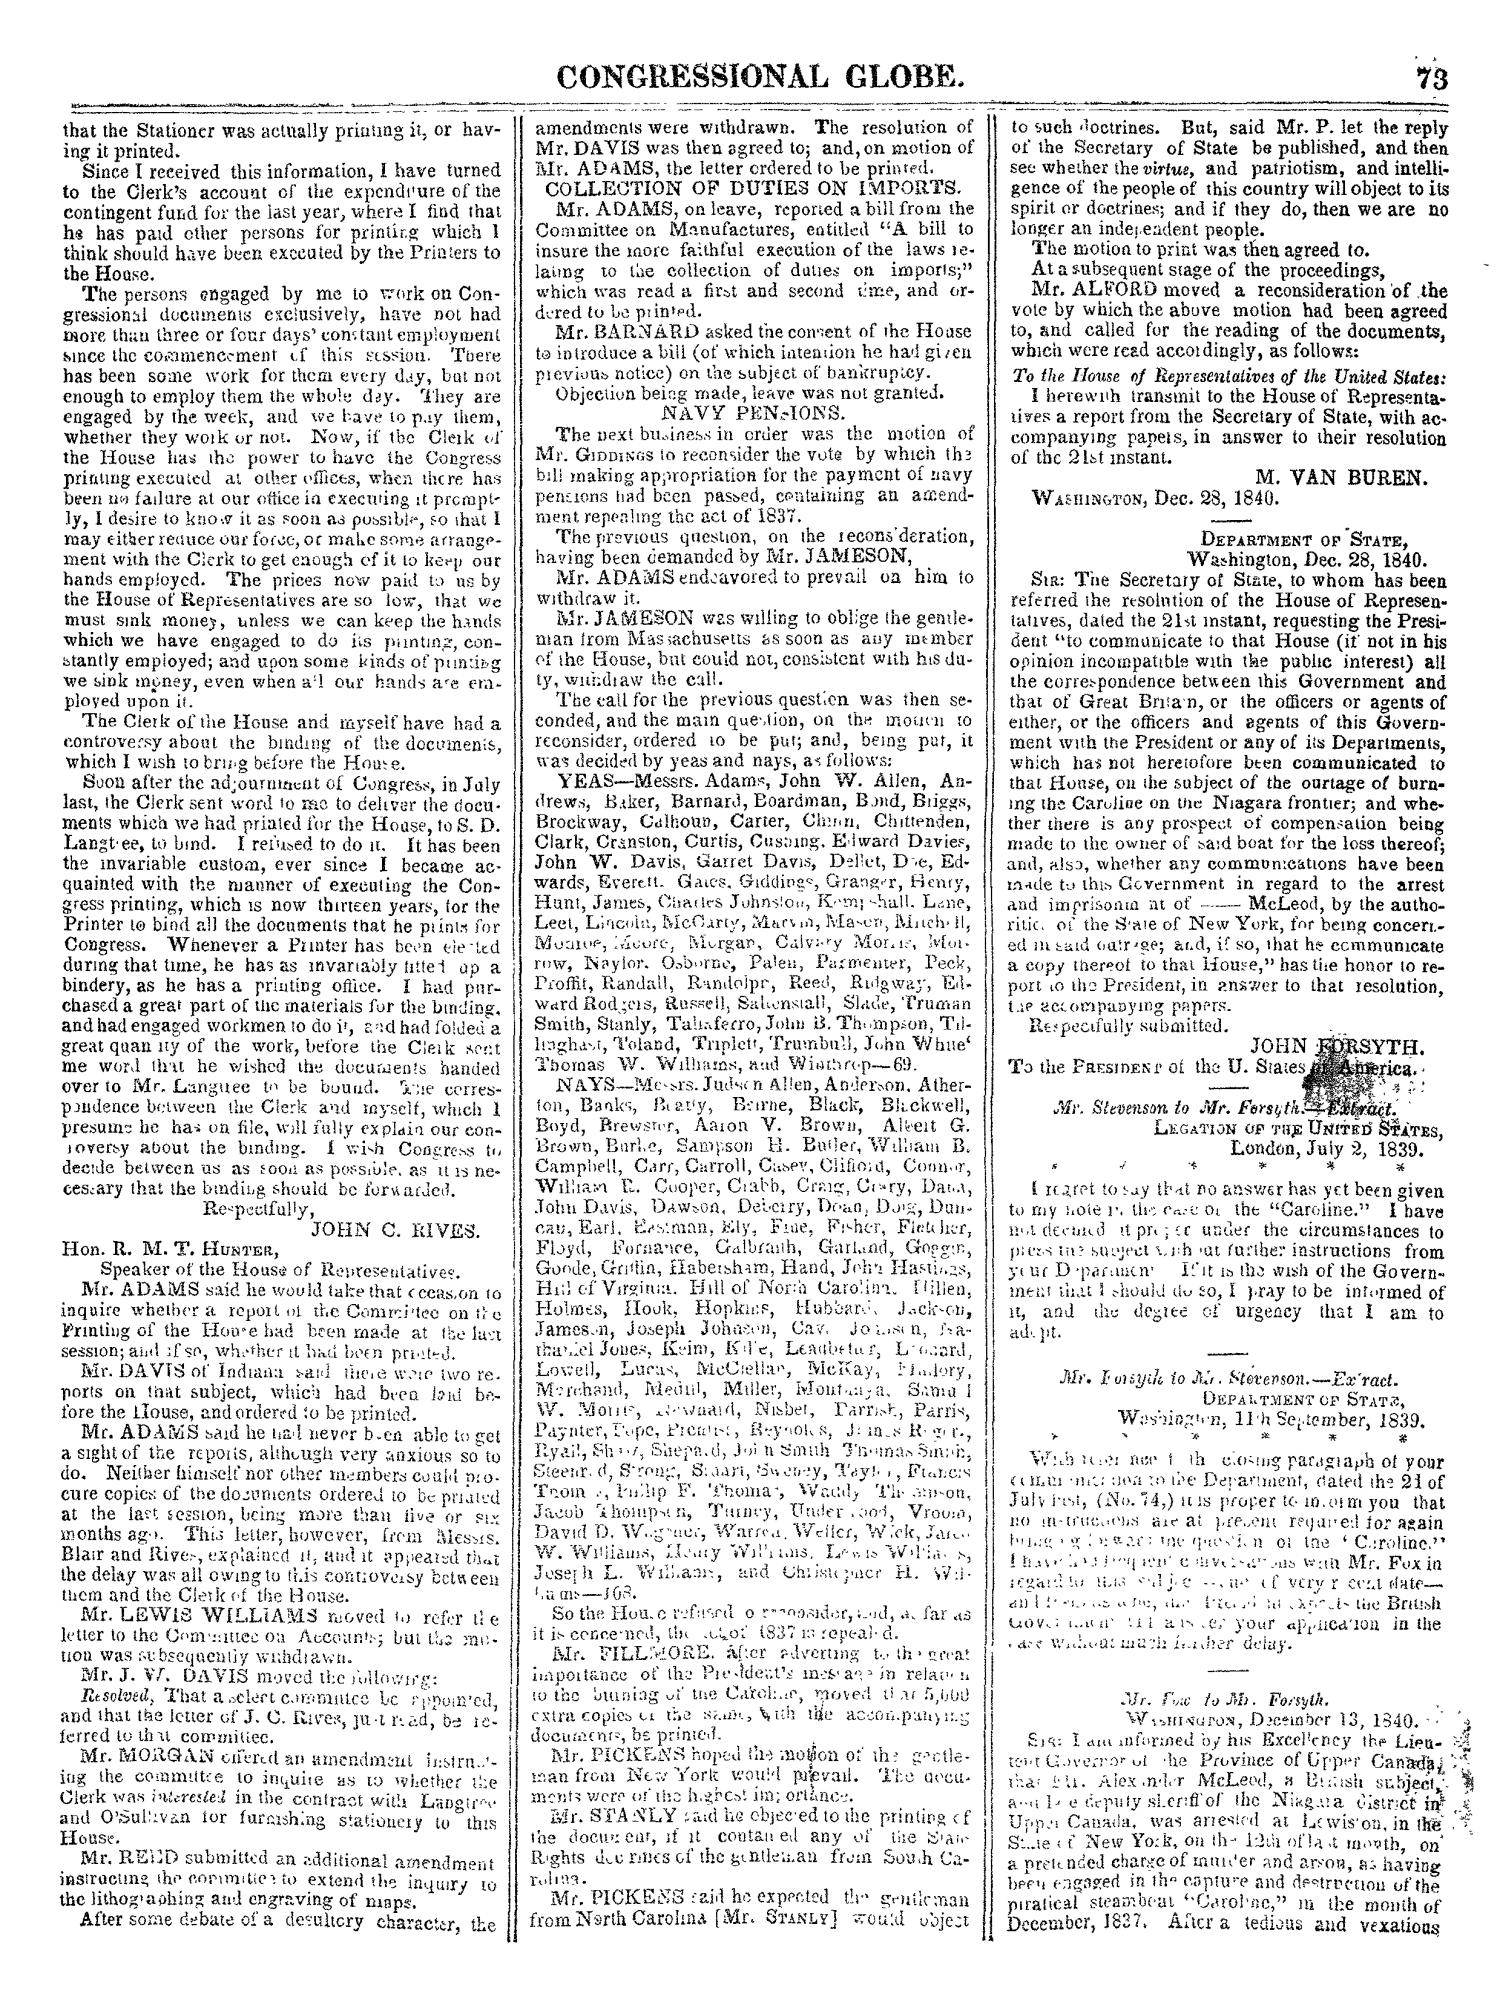 the congressional globe volume 9 twenty sixth congress second Military IPR Meeting the congressional globe volume 9 twenty sixth congress second session page 73 digital library